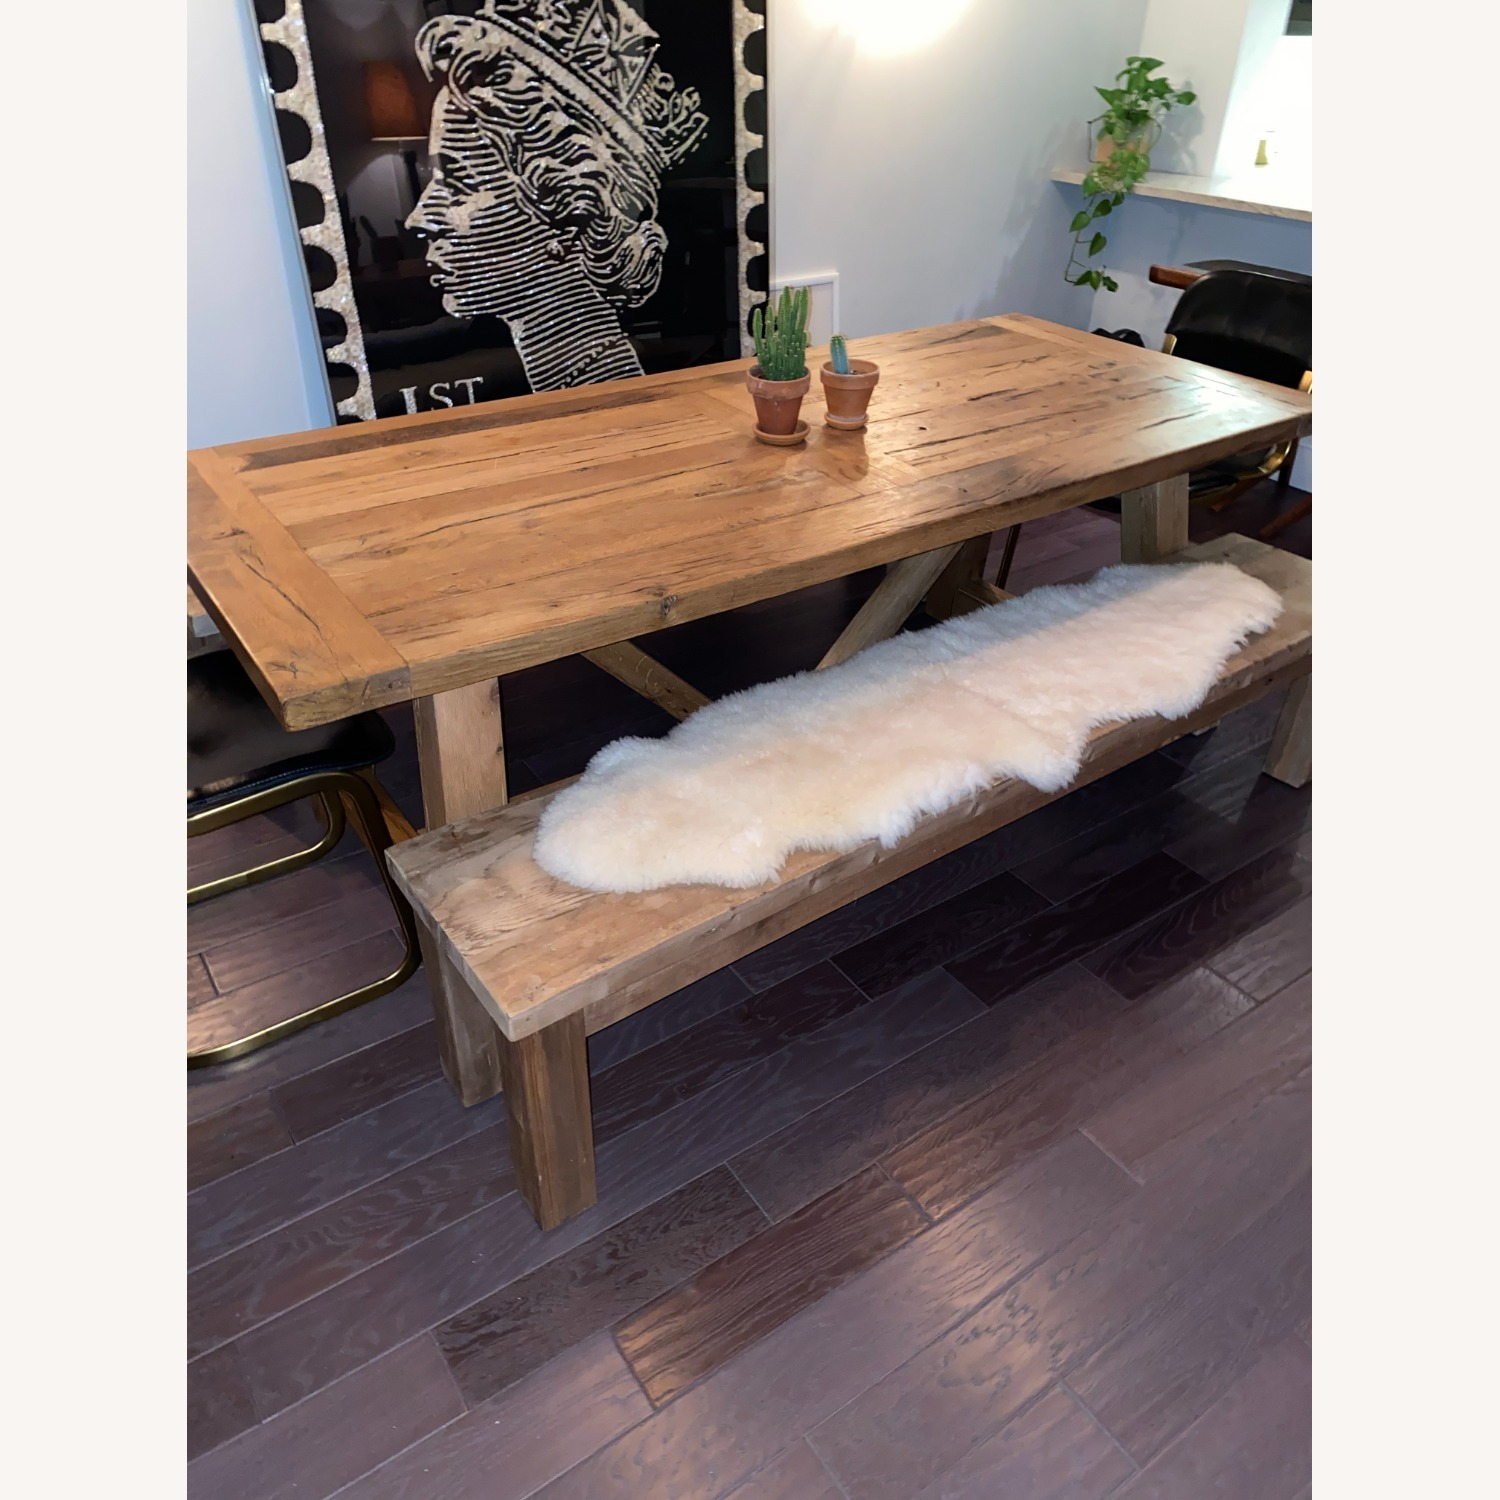 Restoration Hardware Russian Oak Table and Benches - image-4